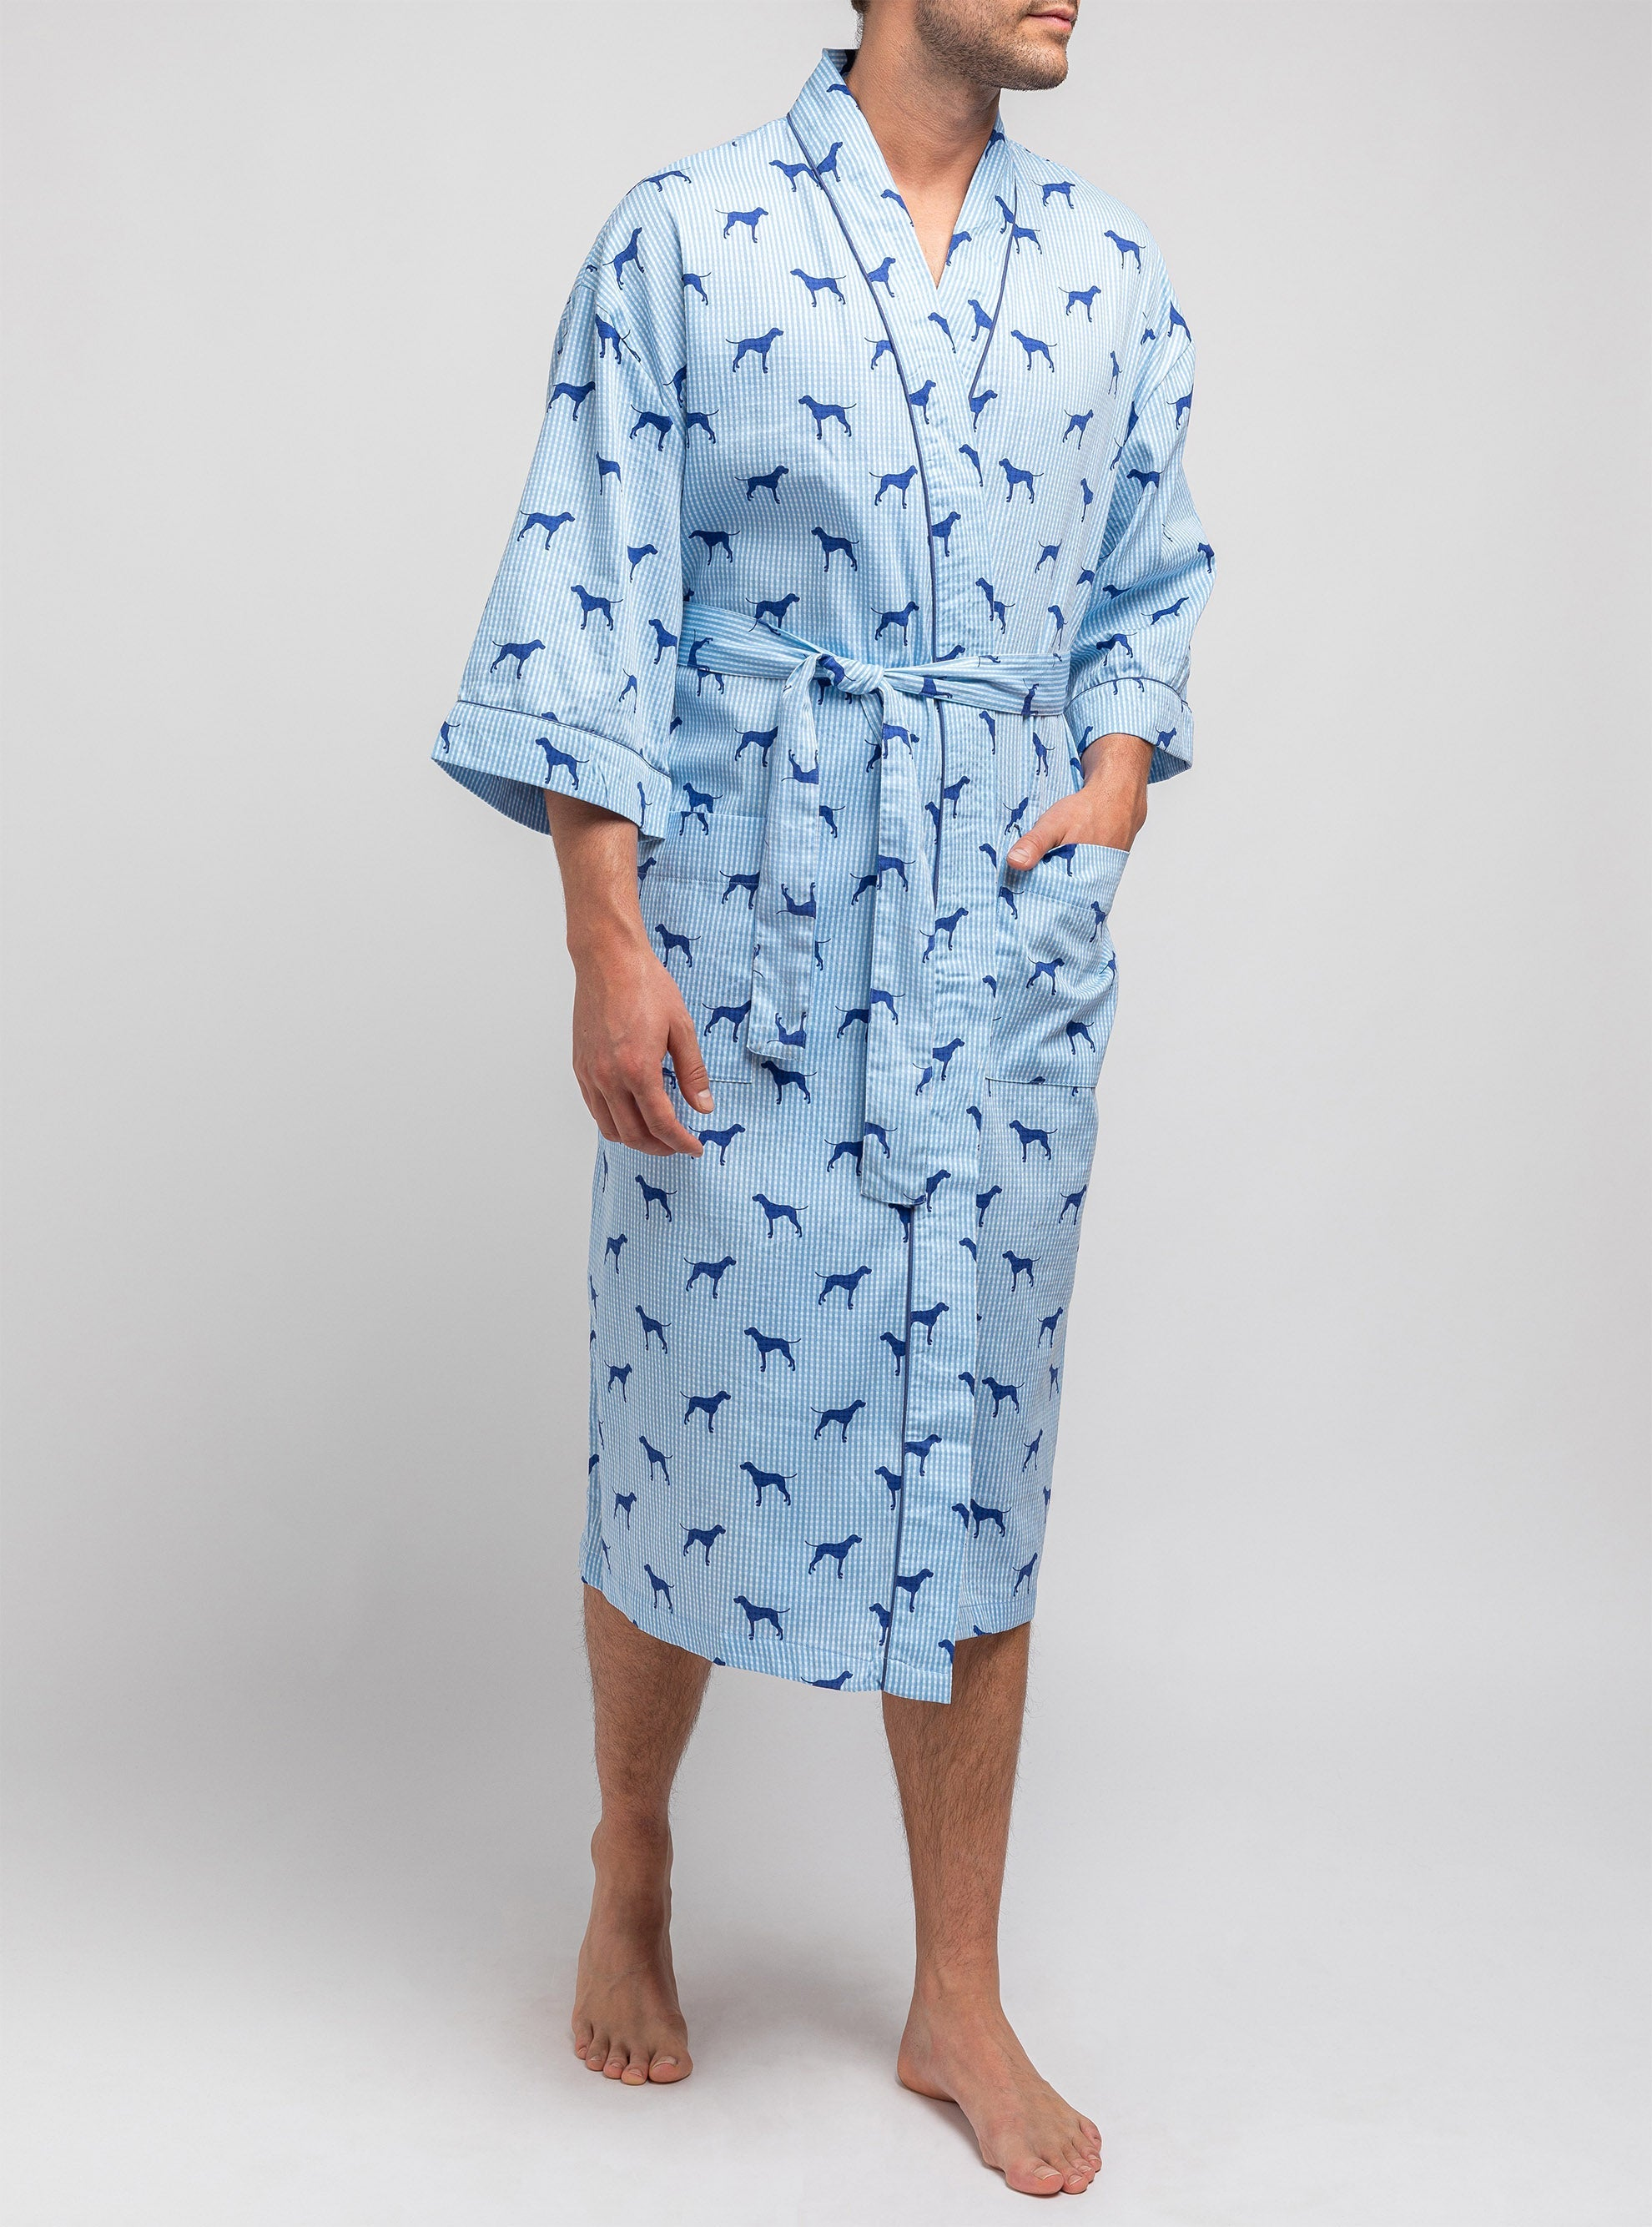 Navy bathrobe with dog motifs